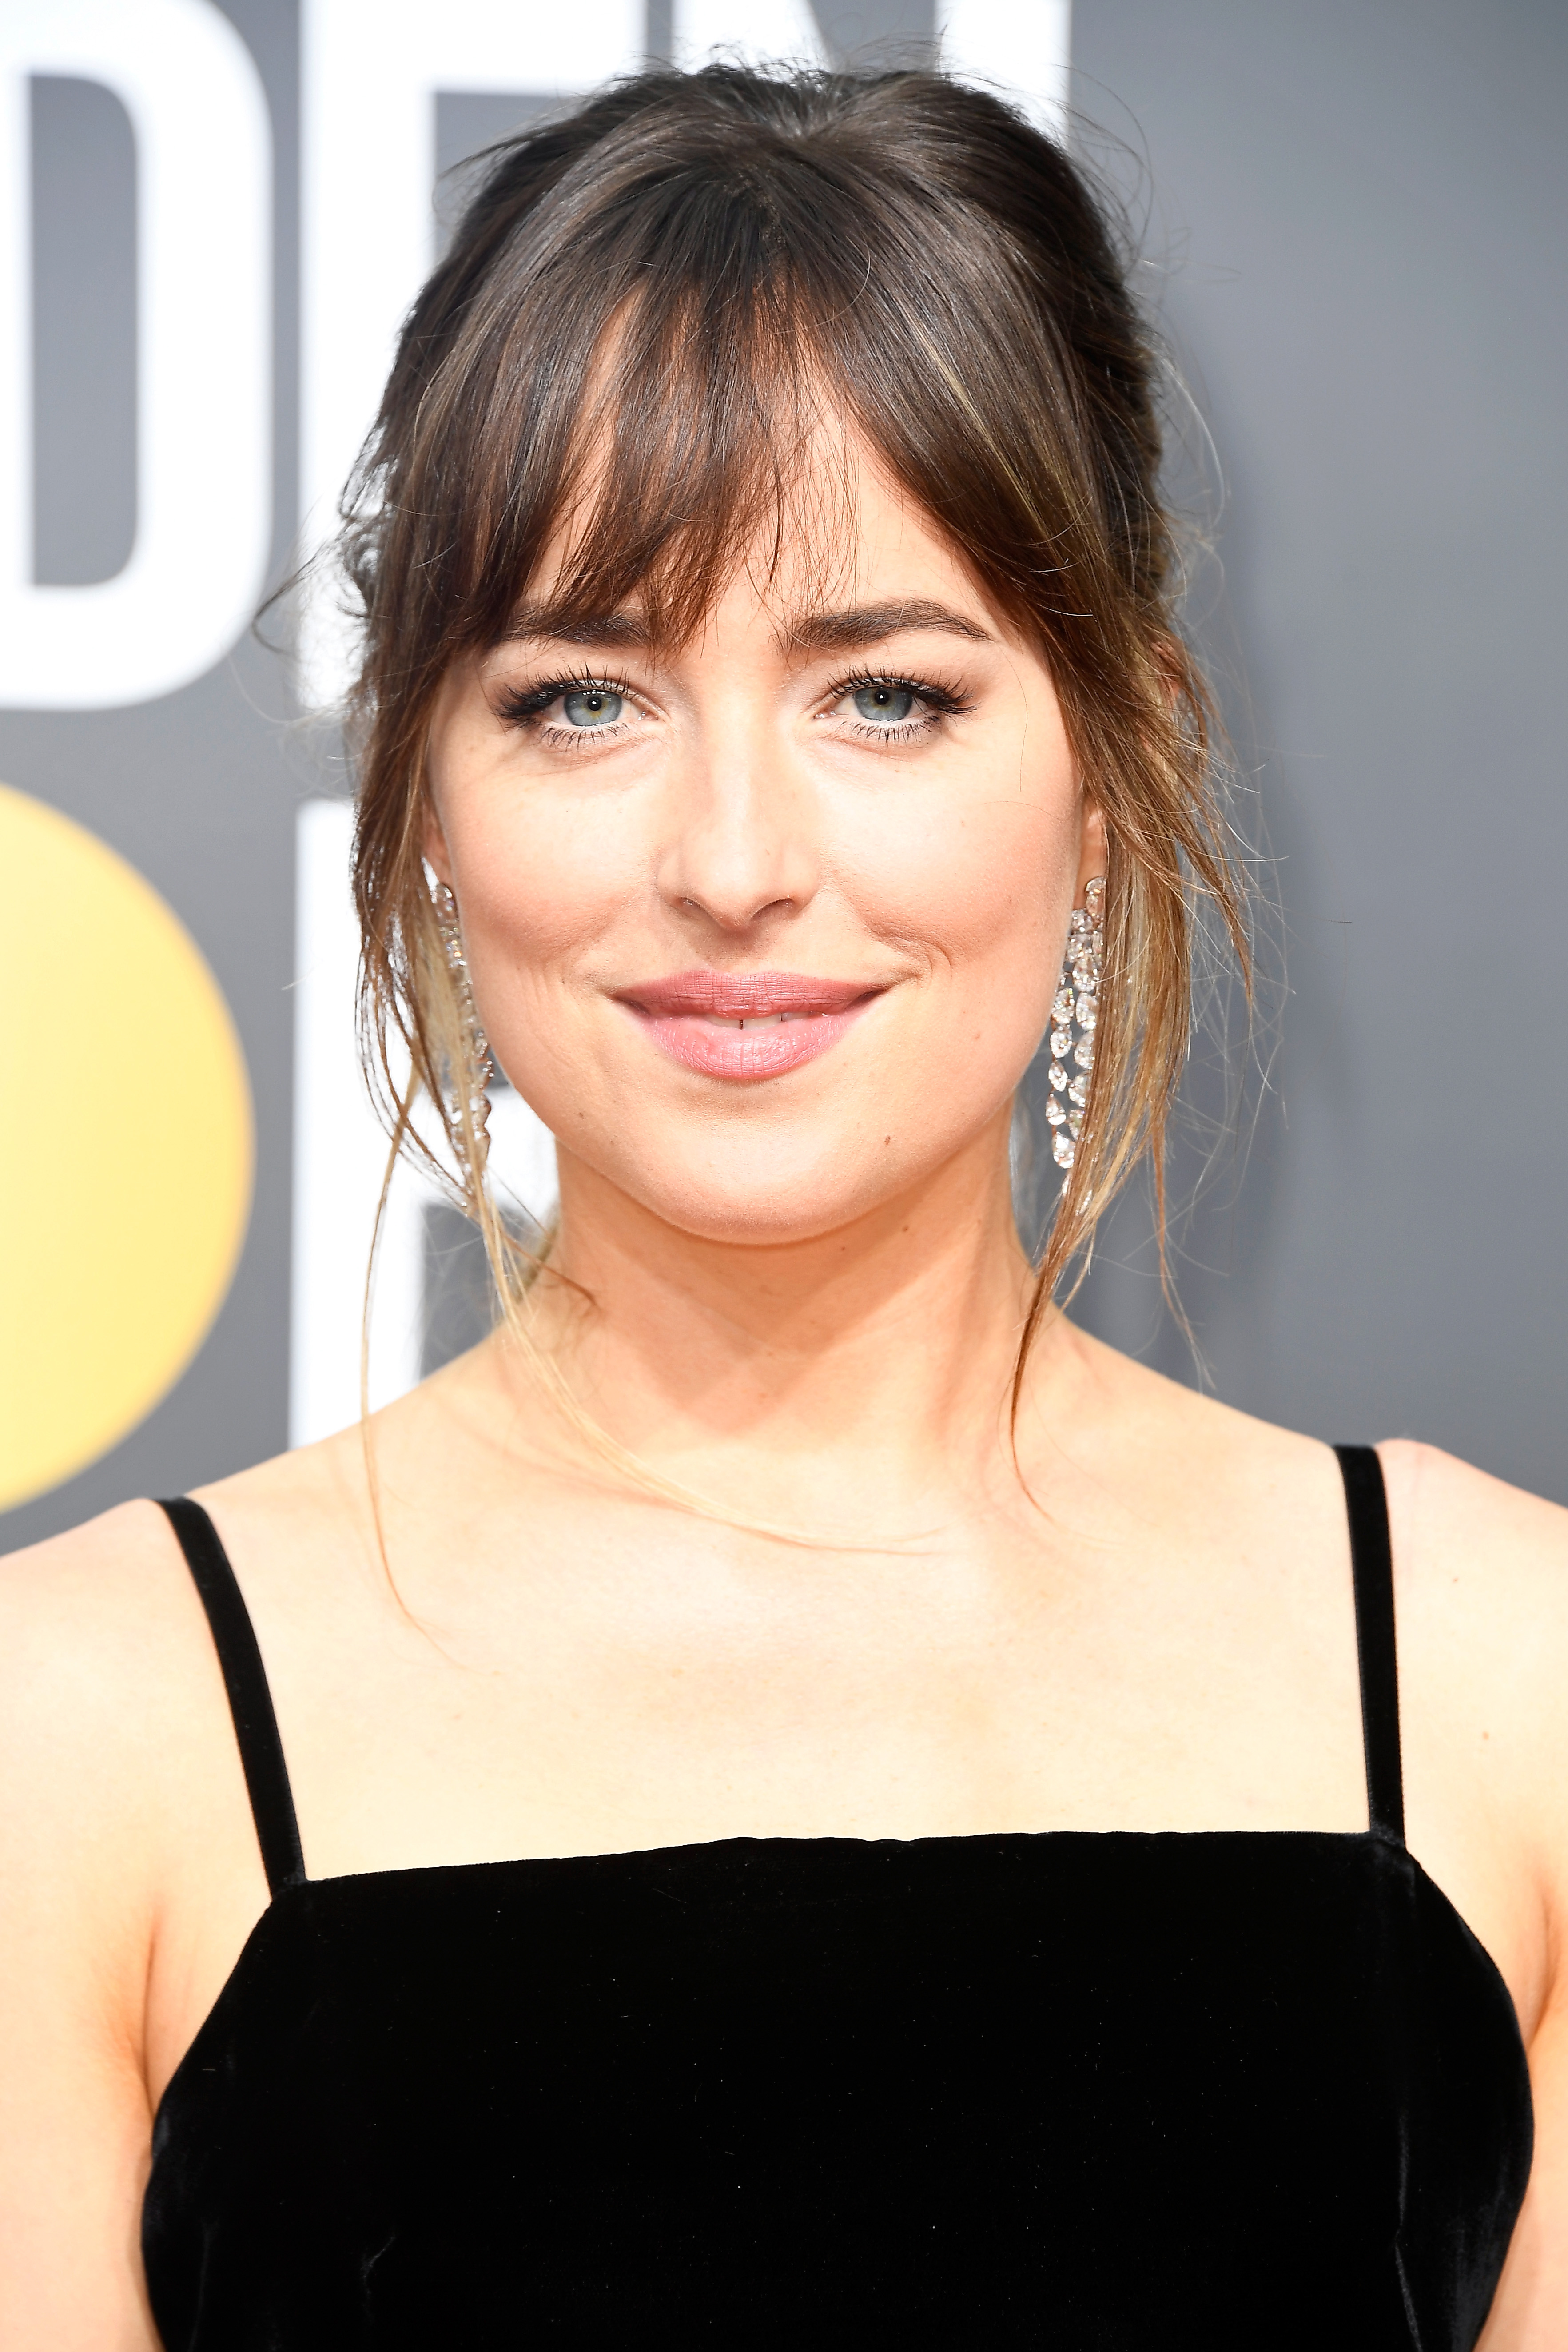 Actor Dakota Johnson attends The 75th Annual Golden Globe Awards at The Beverly Hilton Hotel on January 7, 2018 in Beverly Hills, California.